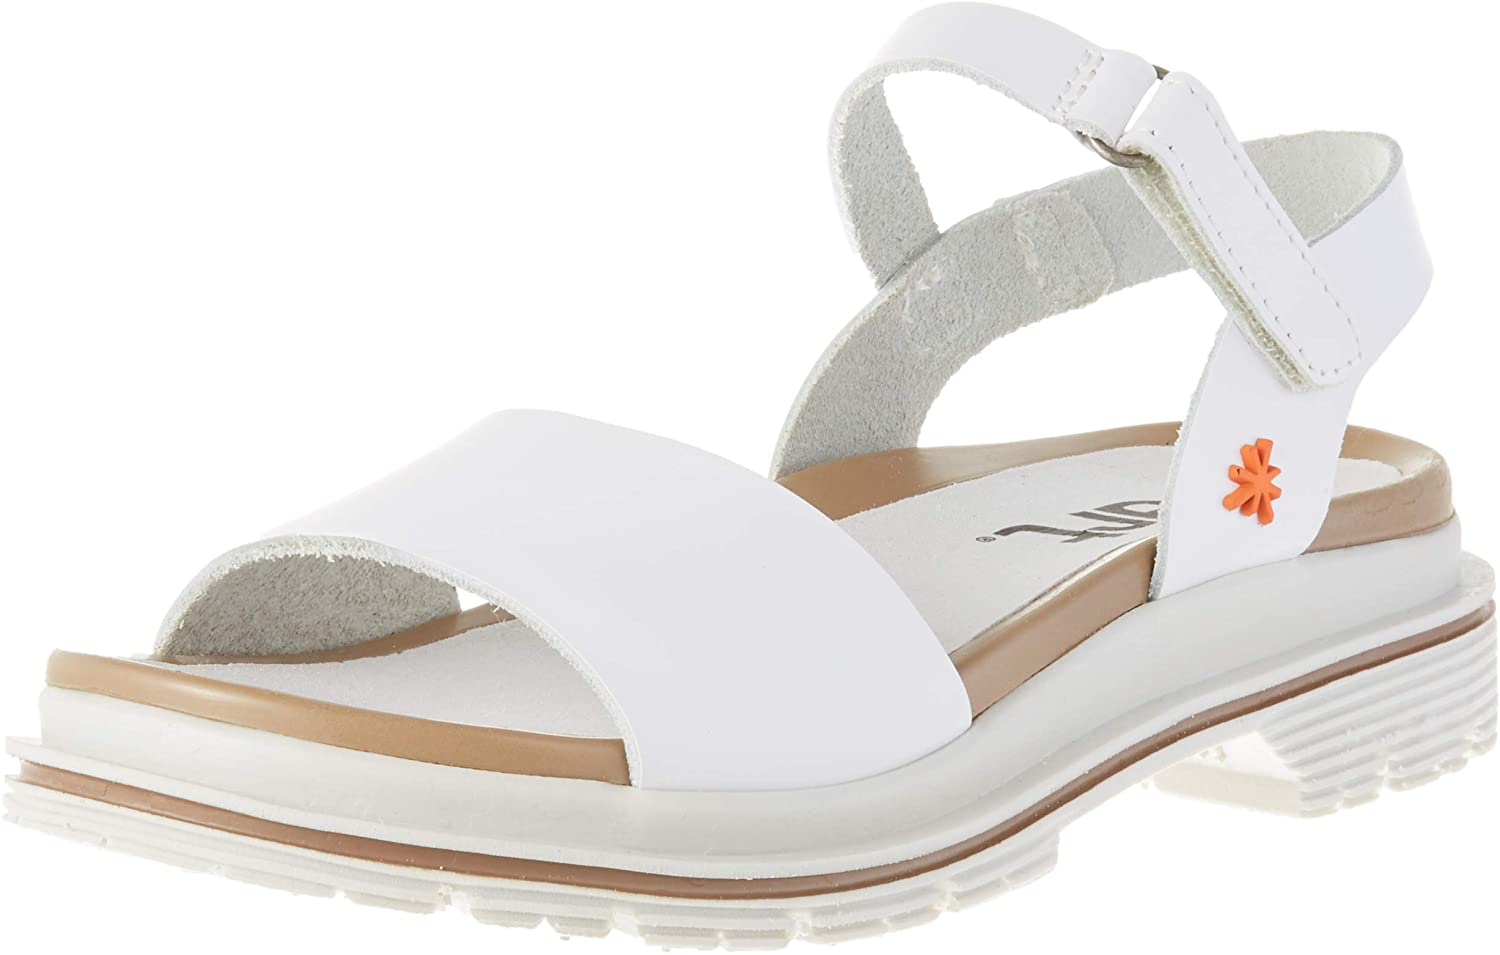 Art Womens Ankle Strap Sandals